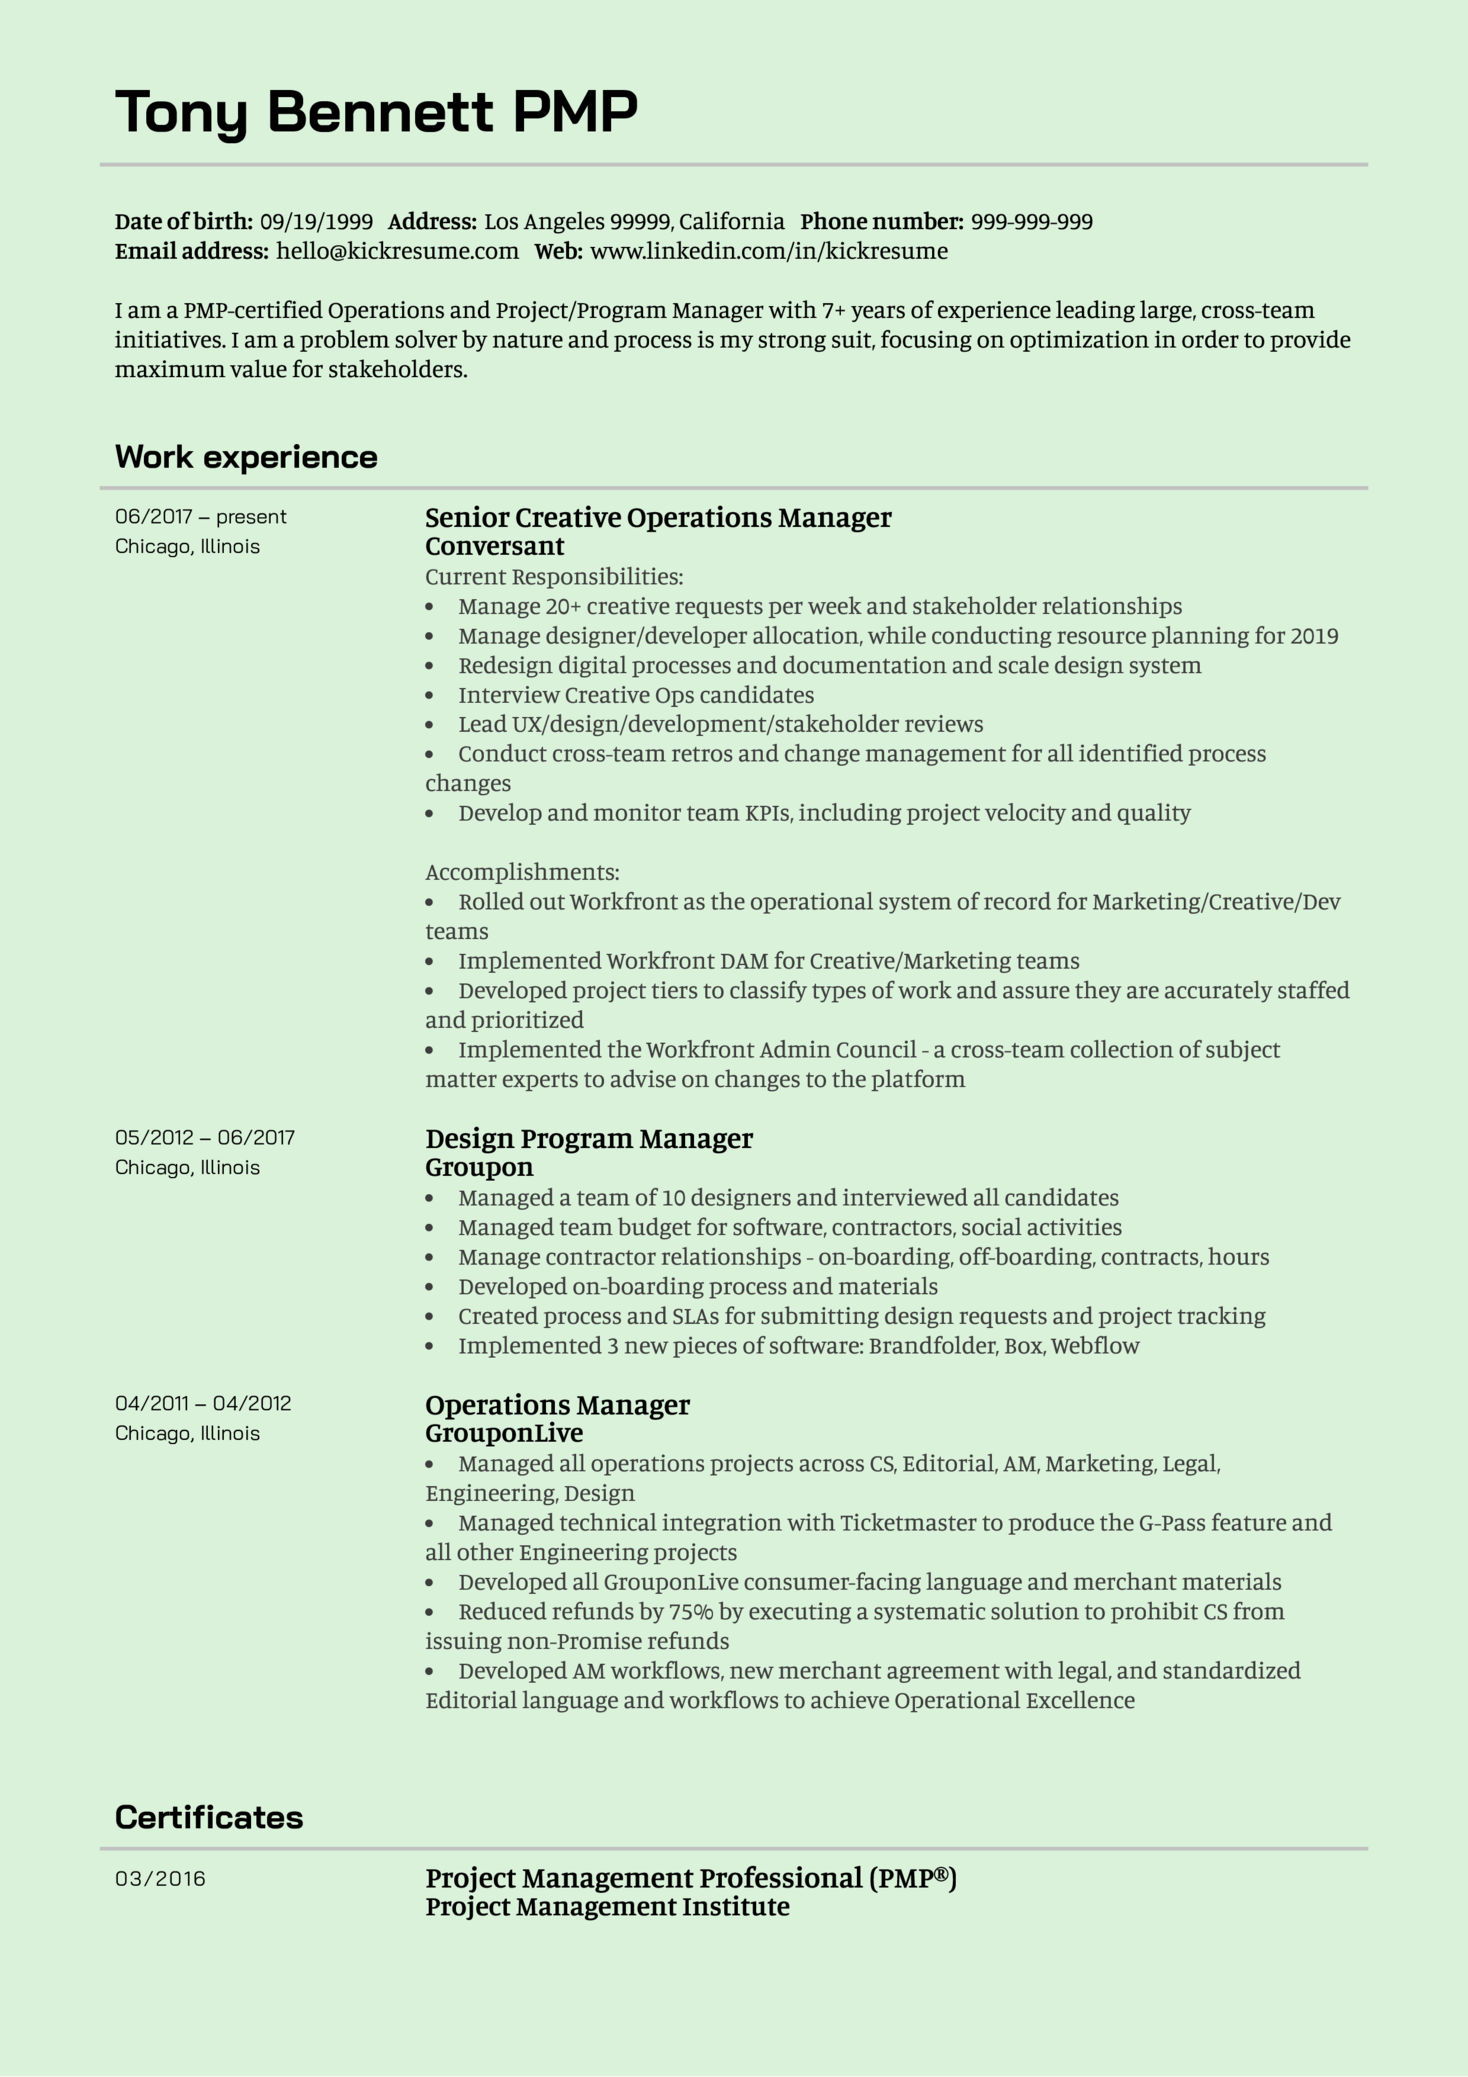 Senior Creative Operations Manager CV Example